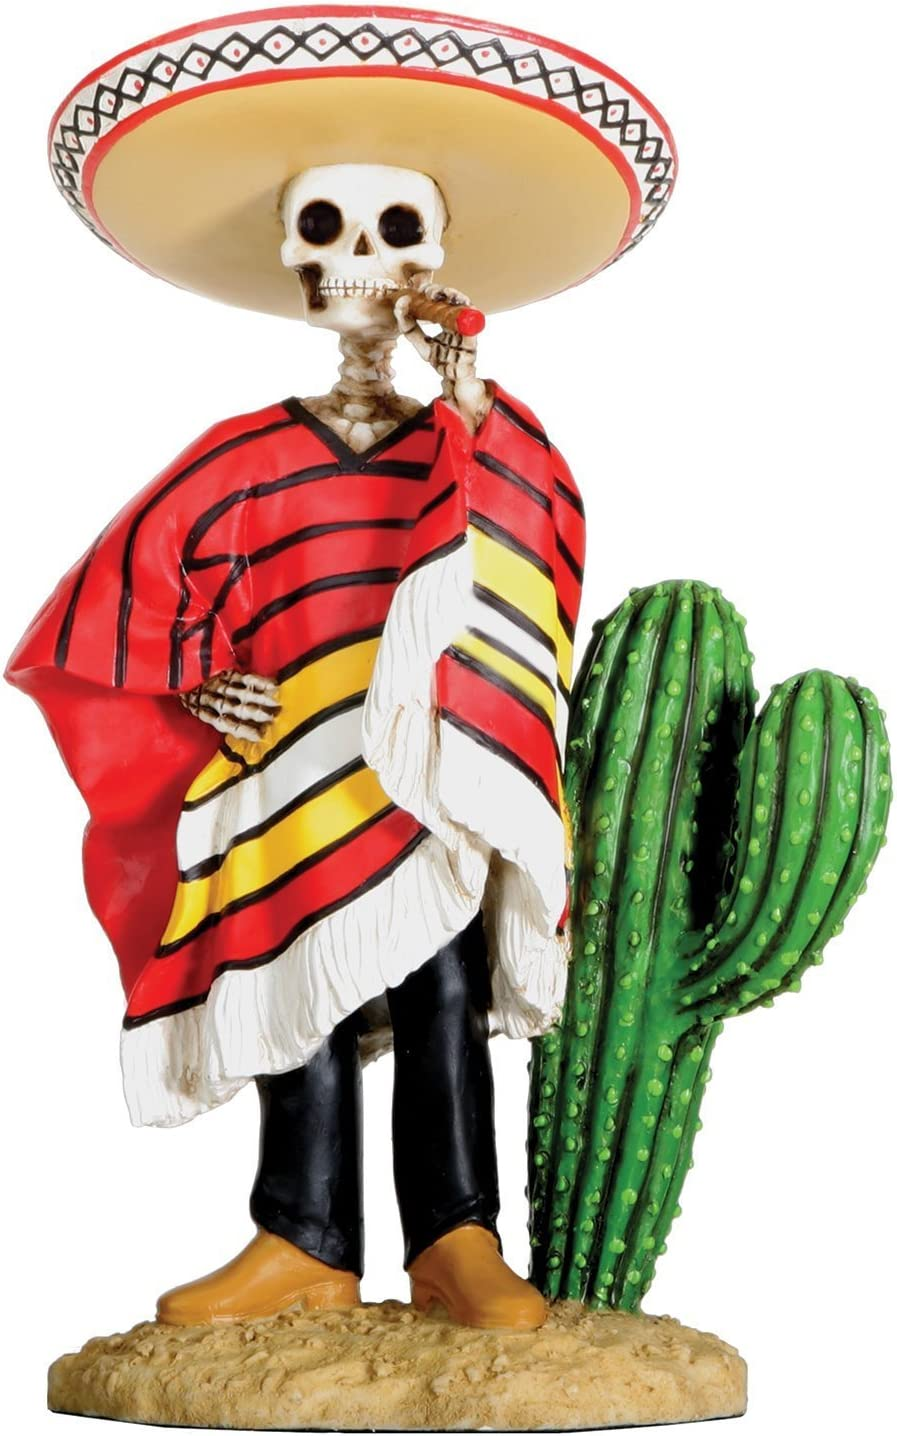 Dod Bandito Mexican Bandit with Cigar Skeleton Outlaw Sculpture